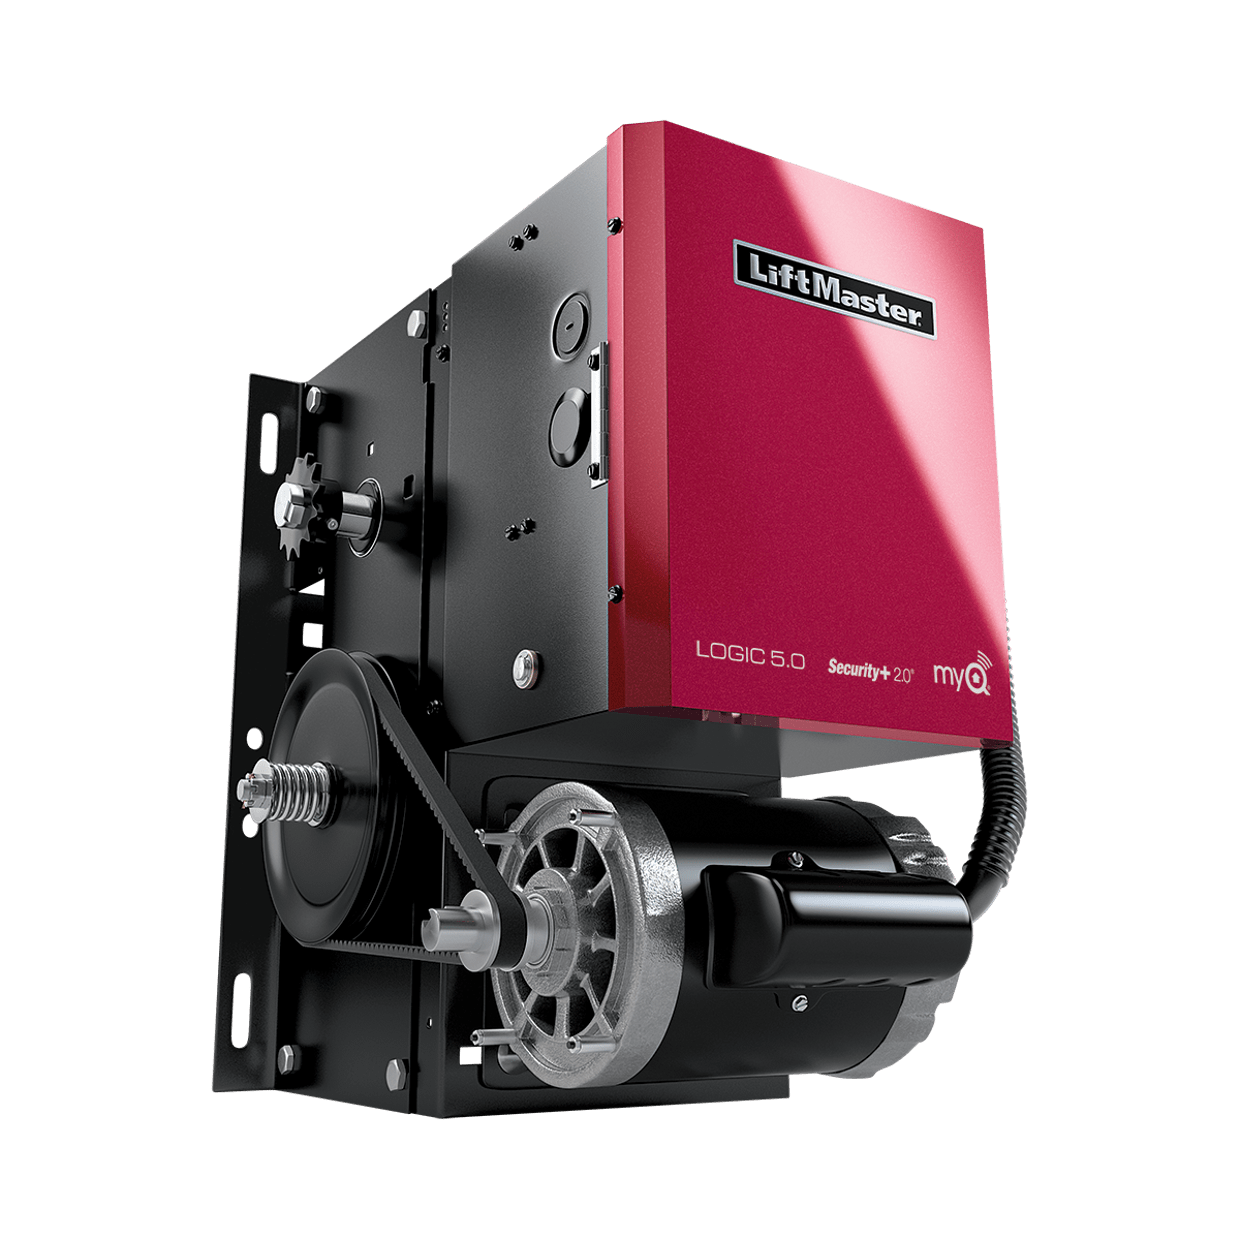 LiftMaster Industrial-Duty Commercial Garage Door Operator